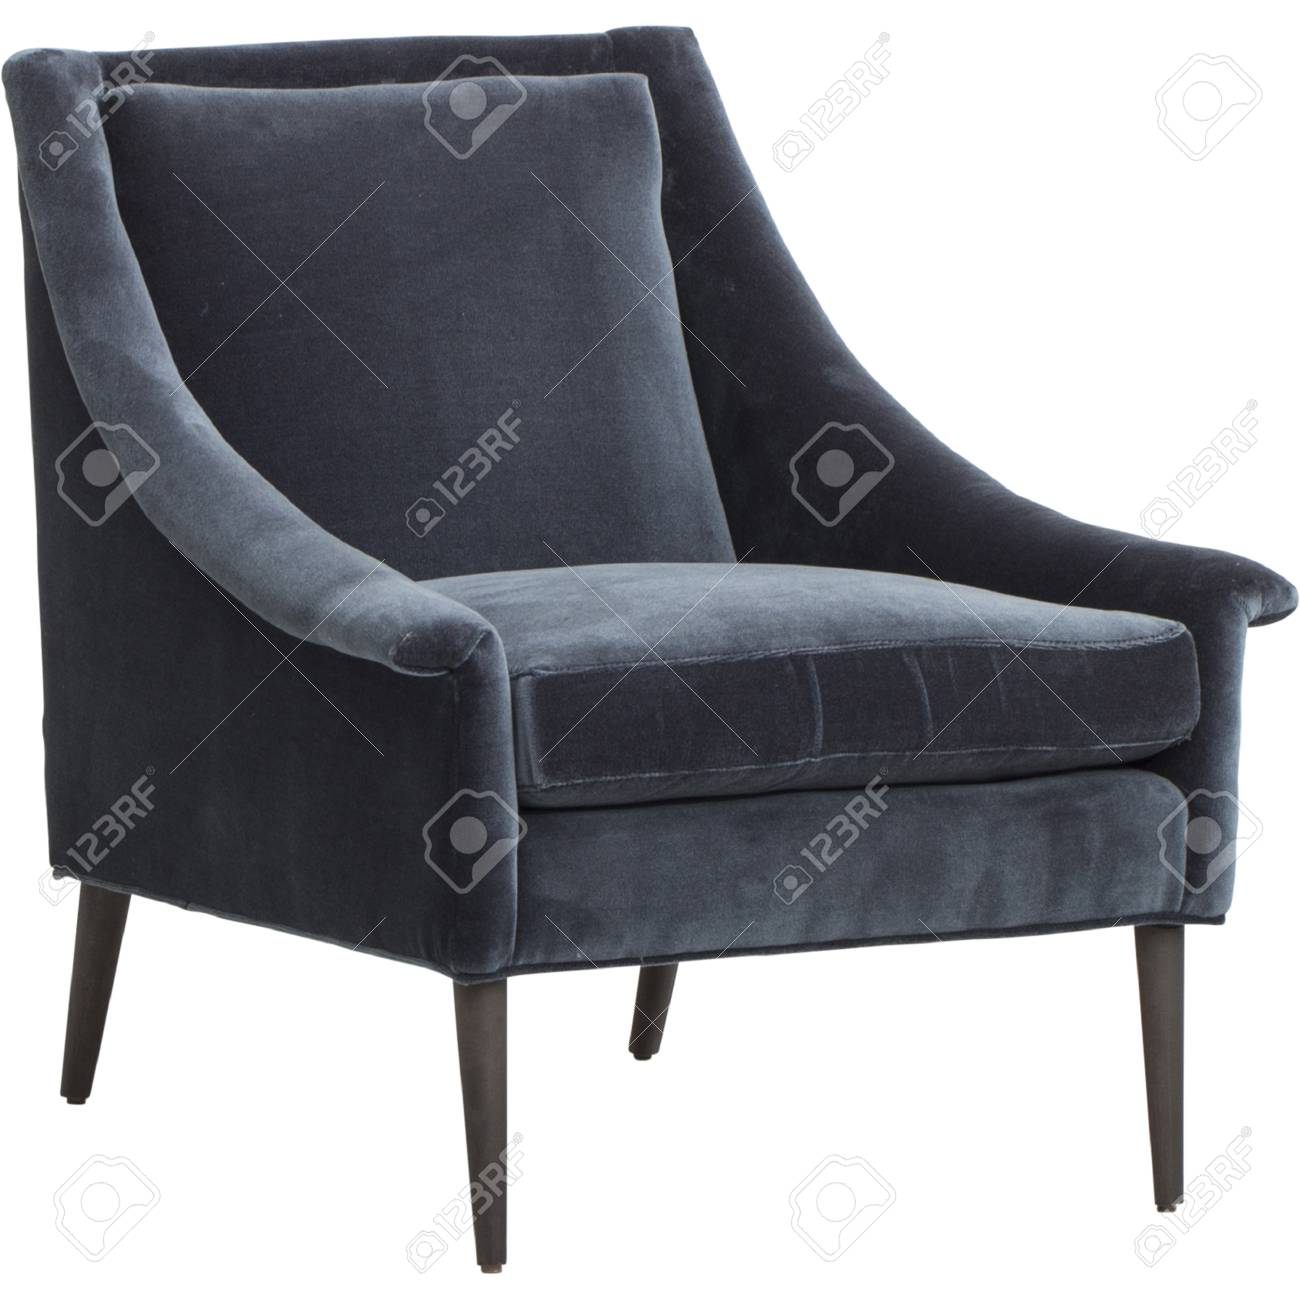 single sofa chair grey living room ideas pinterest unique design furniture stock photo picture and